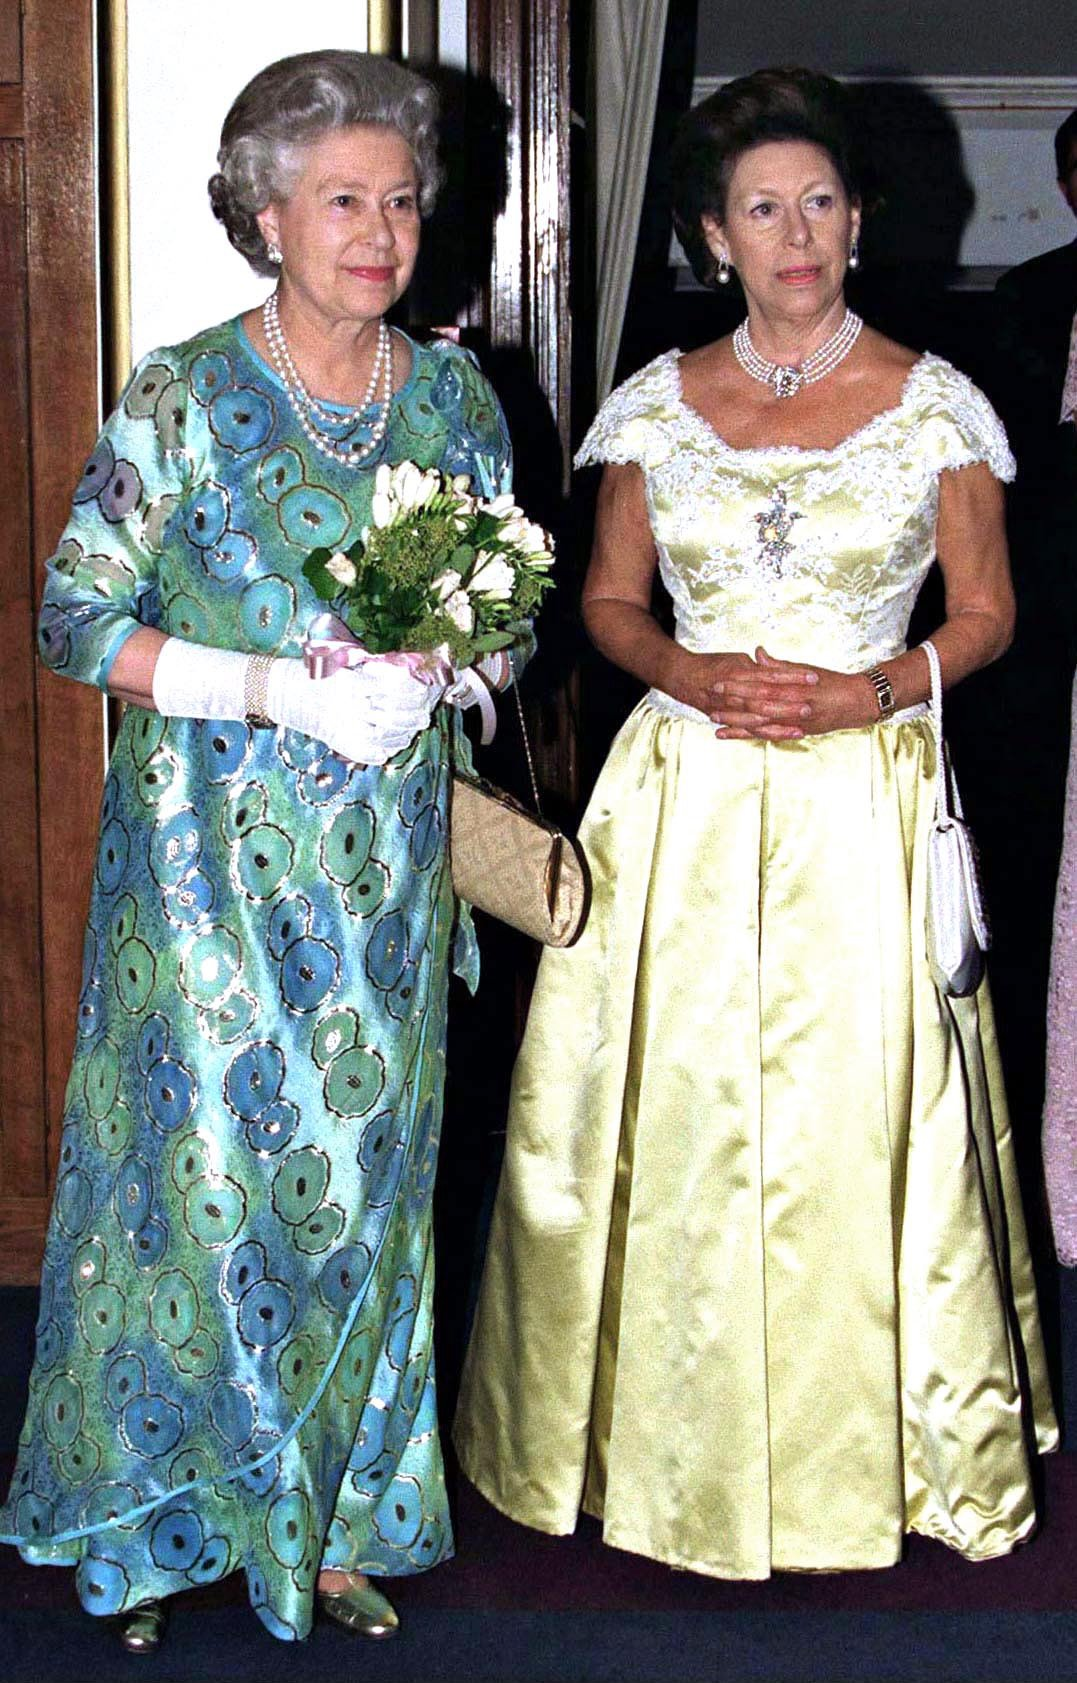 The Queen And Princess Margaret Attending A Concert At The Royal College Of Music.   Source: Getty Images